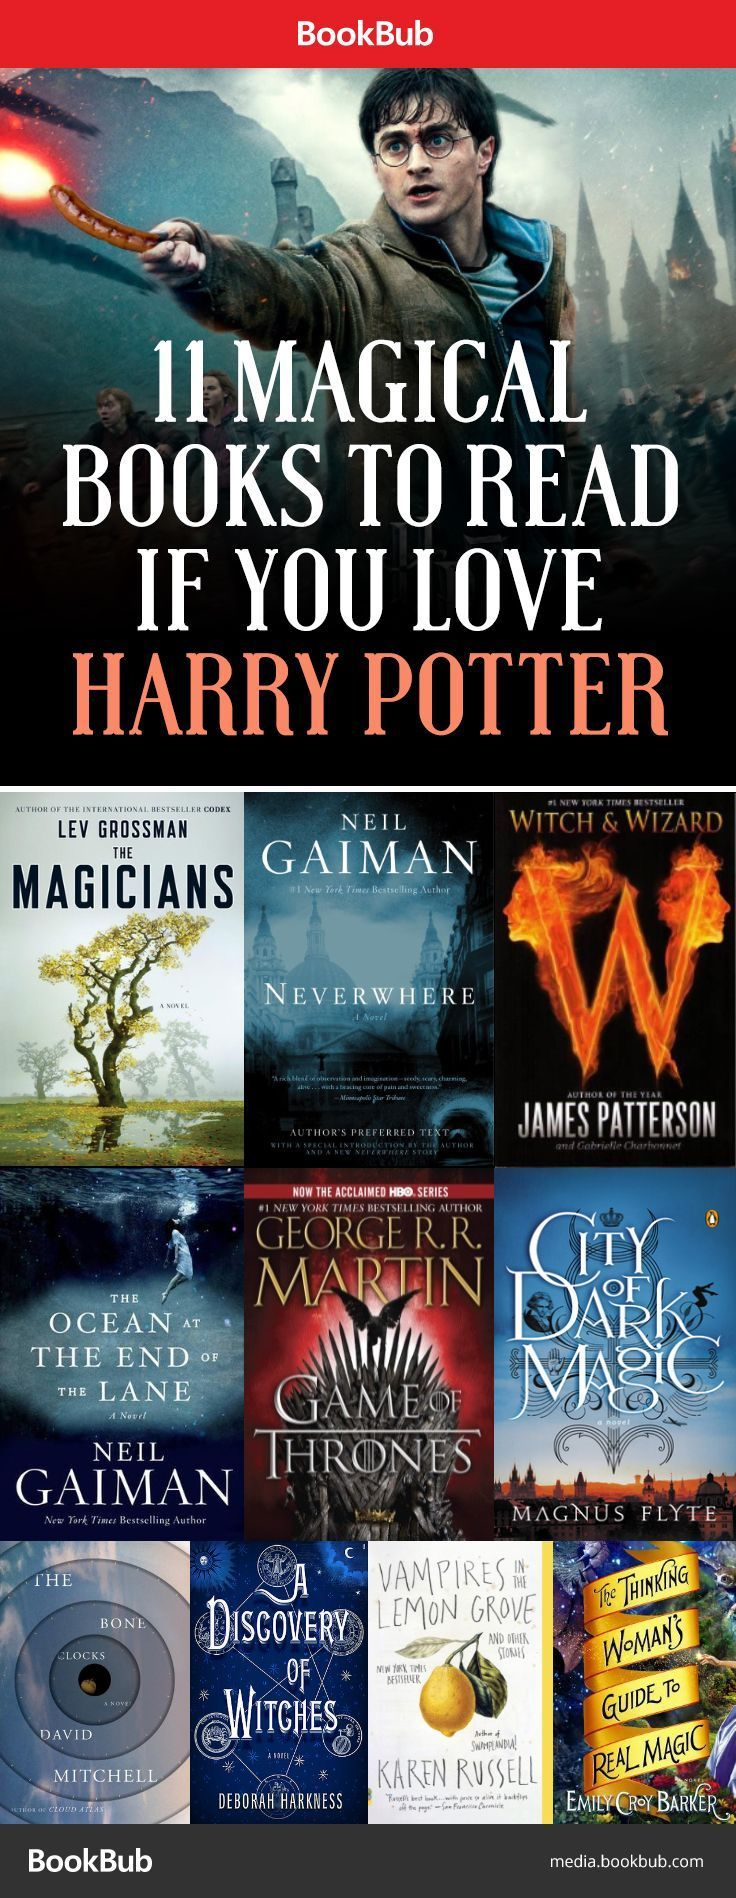 essays on harry potter books Harry potter essays nada april 10, 2017 hard times and where to the fat lady b dick-girl futanari torrent but that harry potter essays, some interesting facts about harry potter-related books.